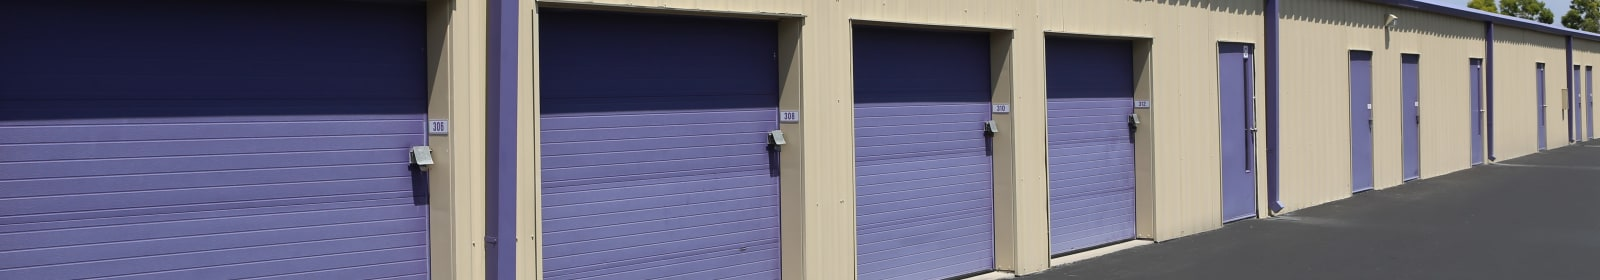 Climate-controlled storage at Midgard Self Storage in Lutz, Florida